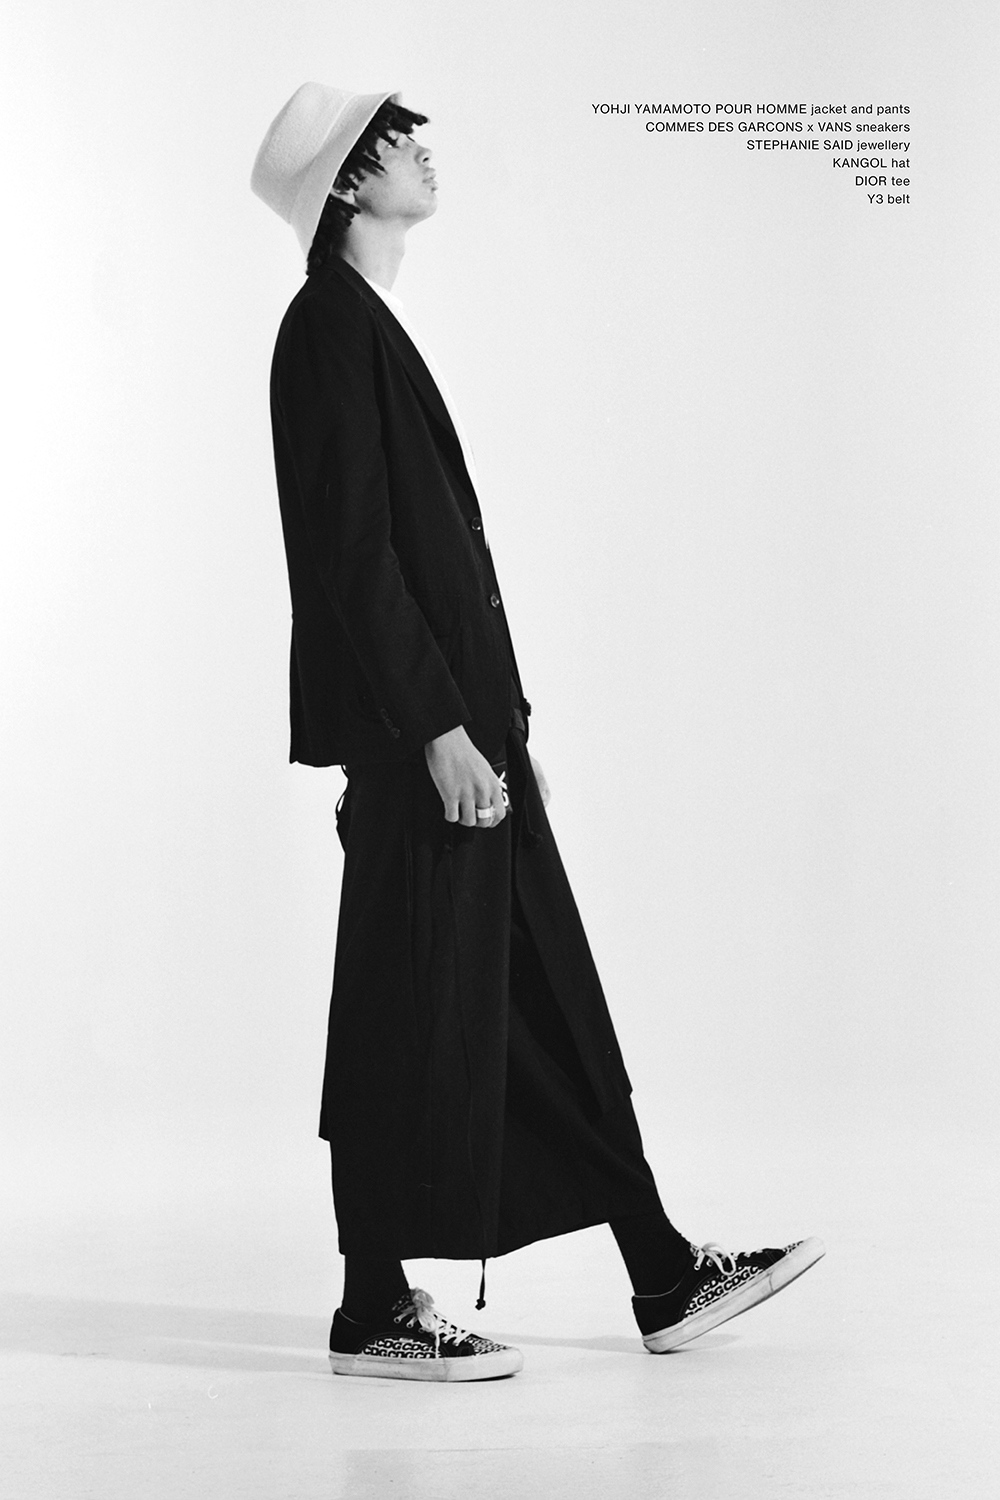 Akira Darlington wearing Yohji Yamamoto, Comme Des Garcons, Dior, Stephanie Said and Kangol for Astrophe Homme fashion editorial by Aaron VIII